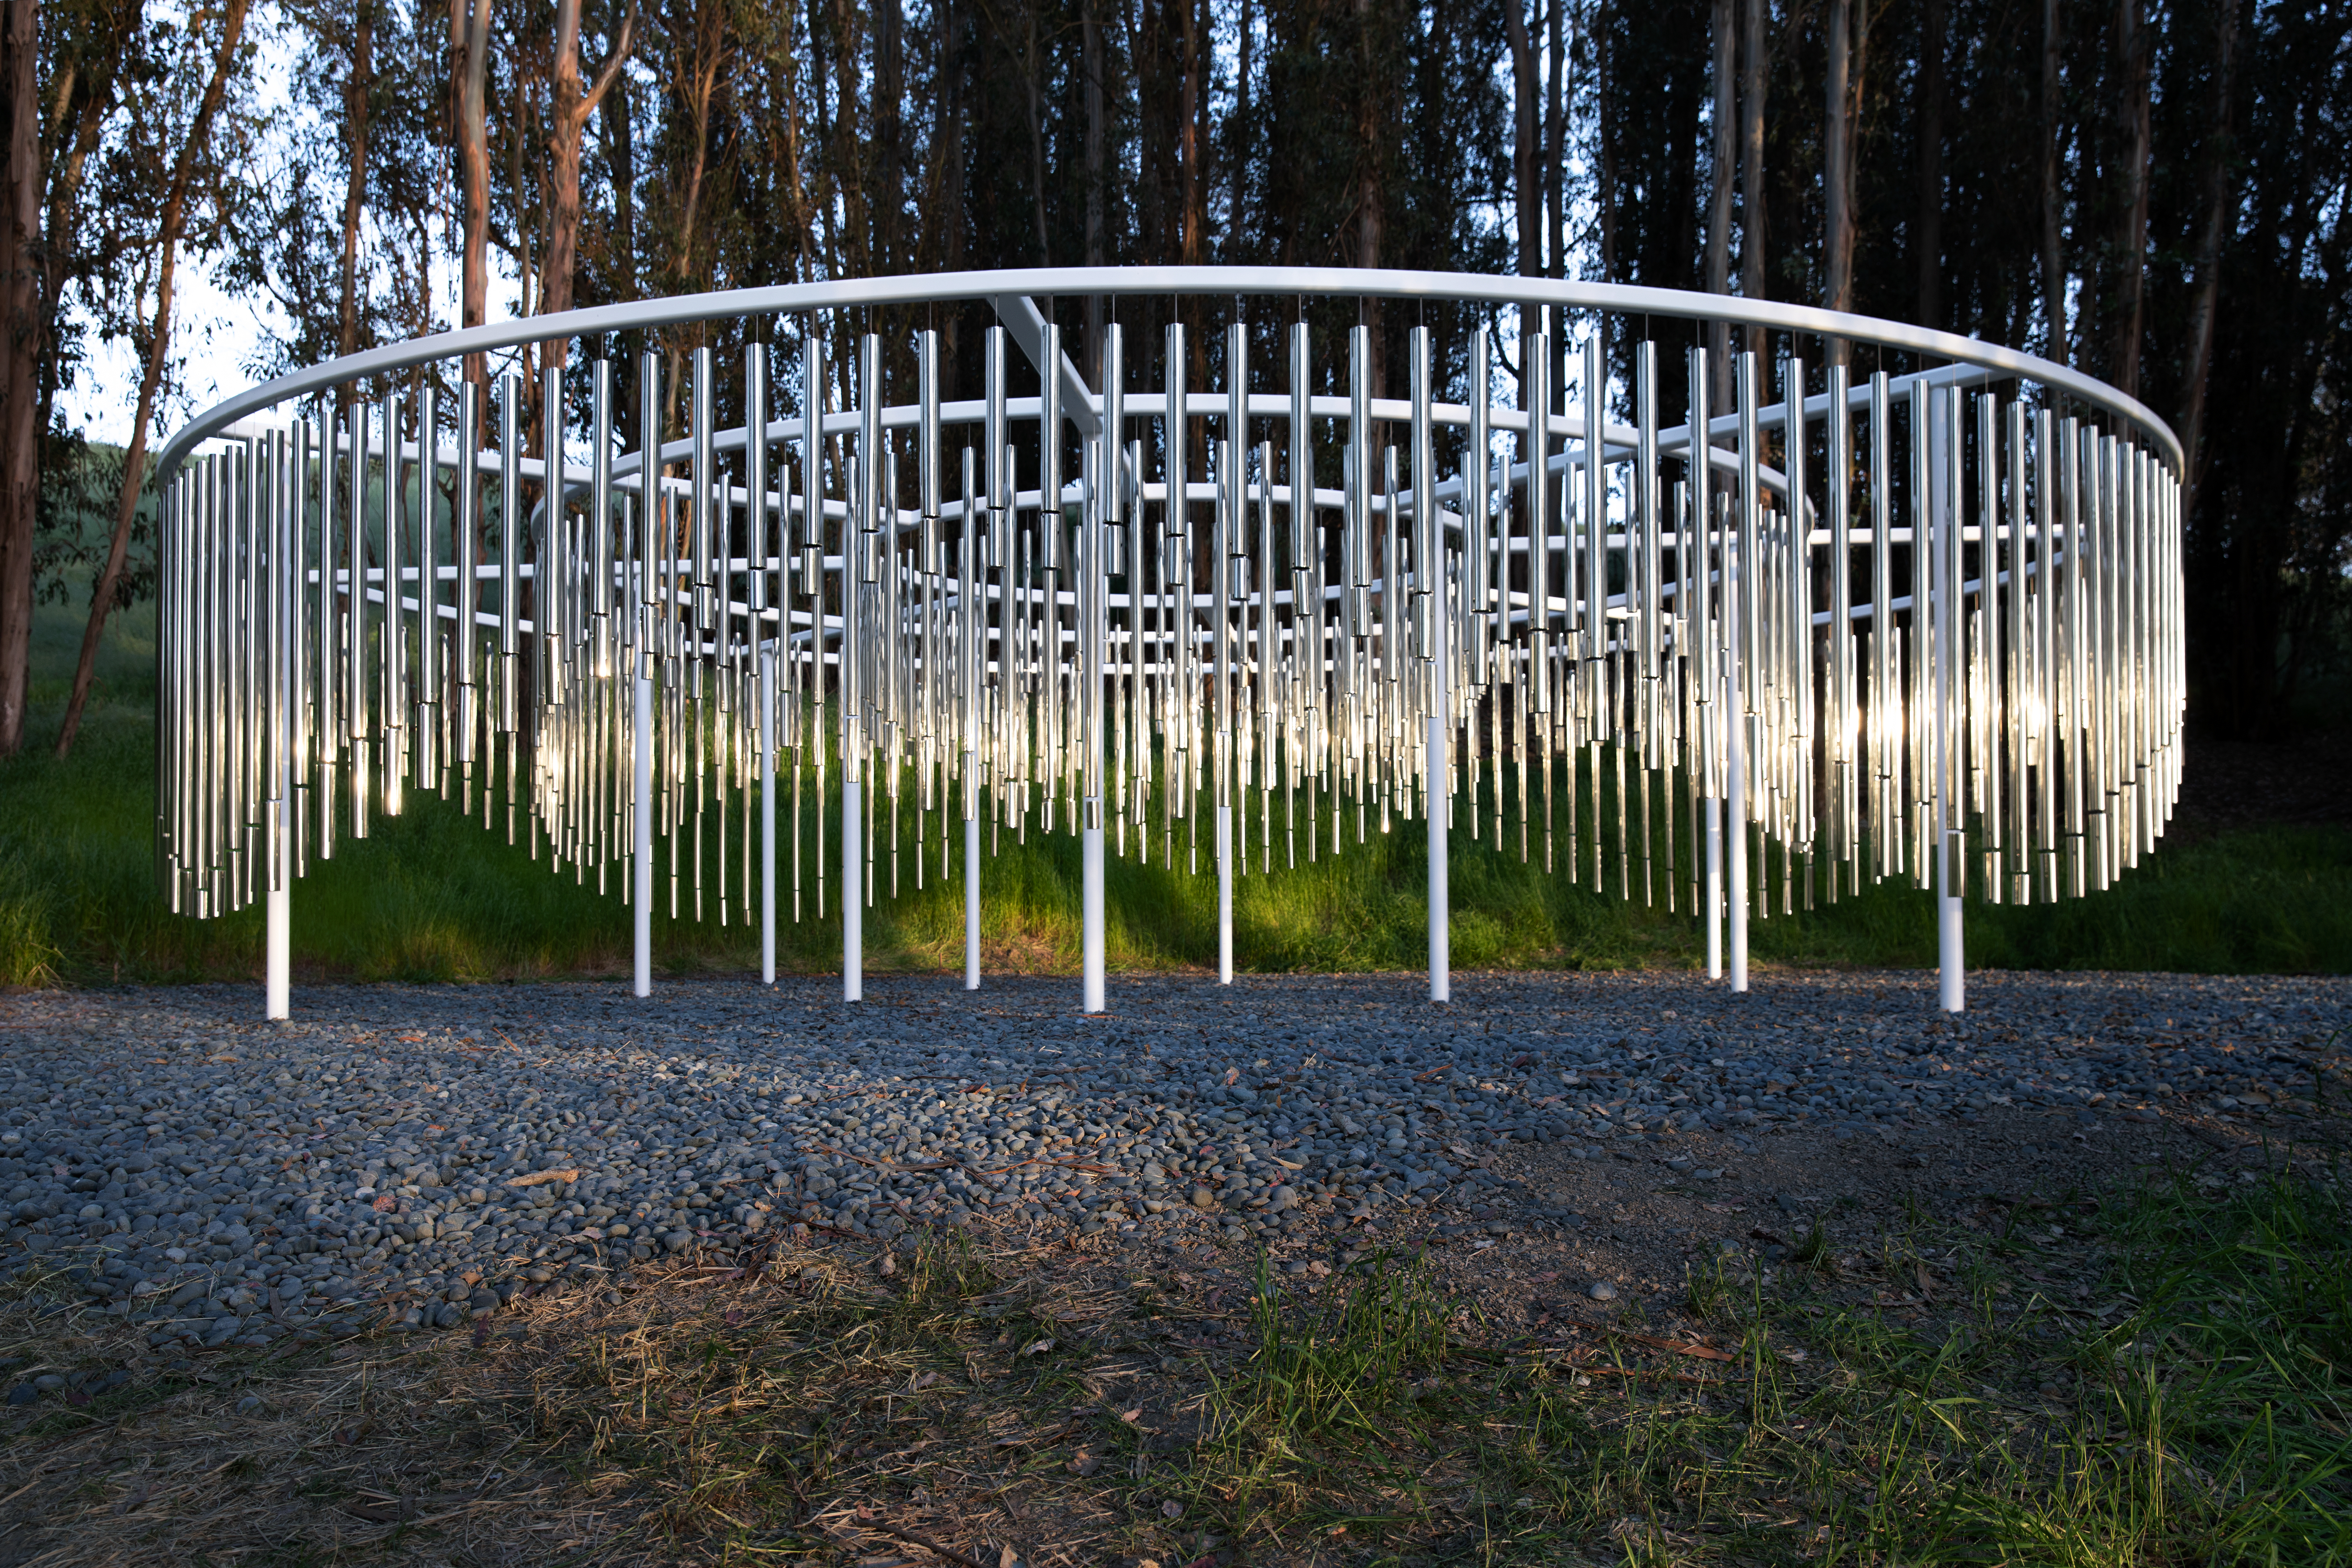 Large circular art work with gleaming steel rods dangling from it that look like massive wind chimes. The installation is set in a grove of trees.